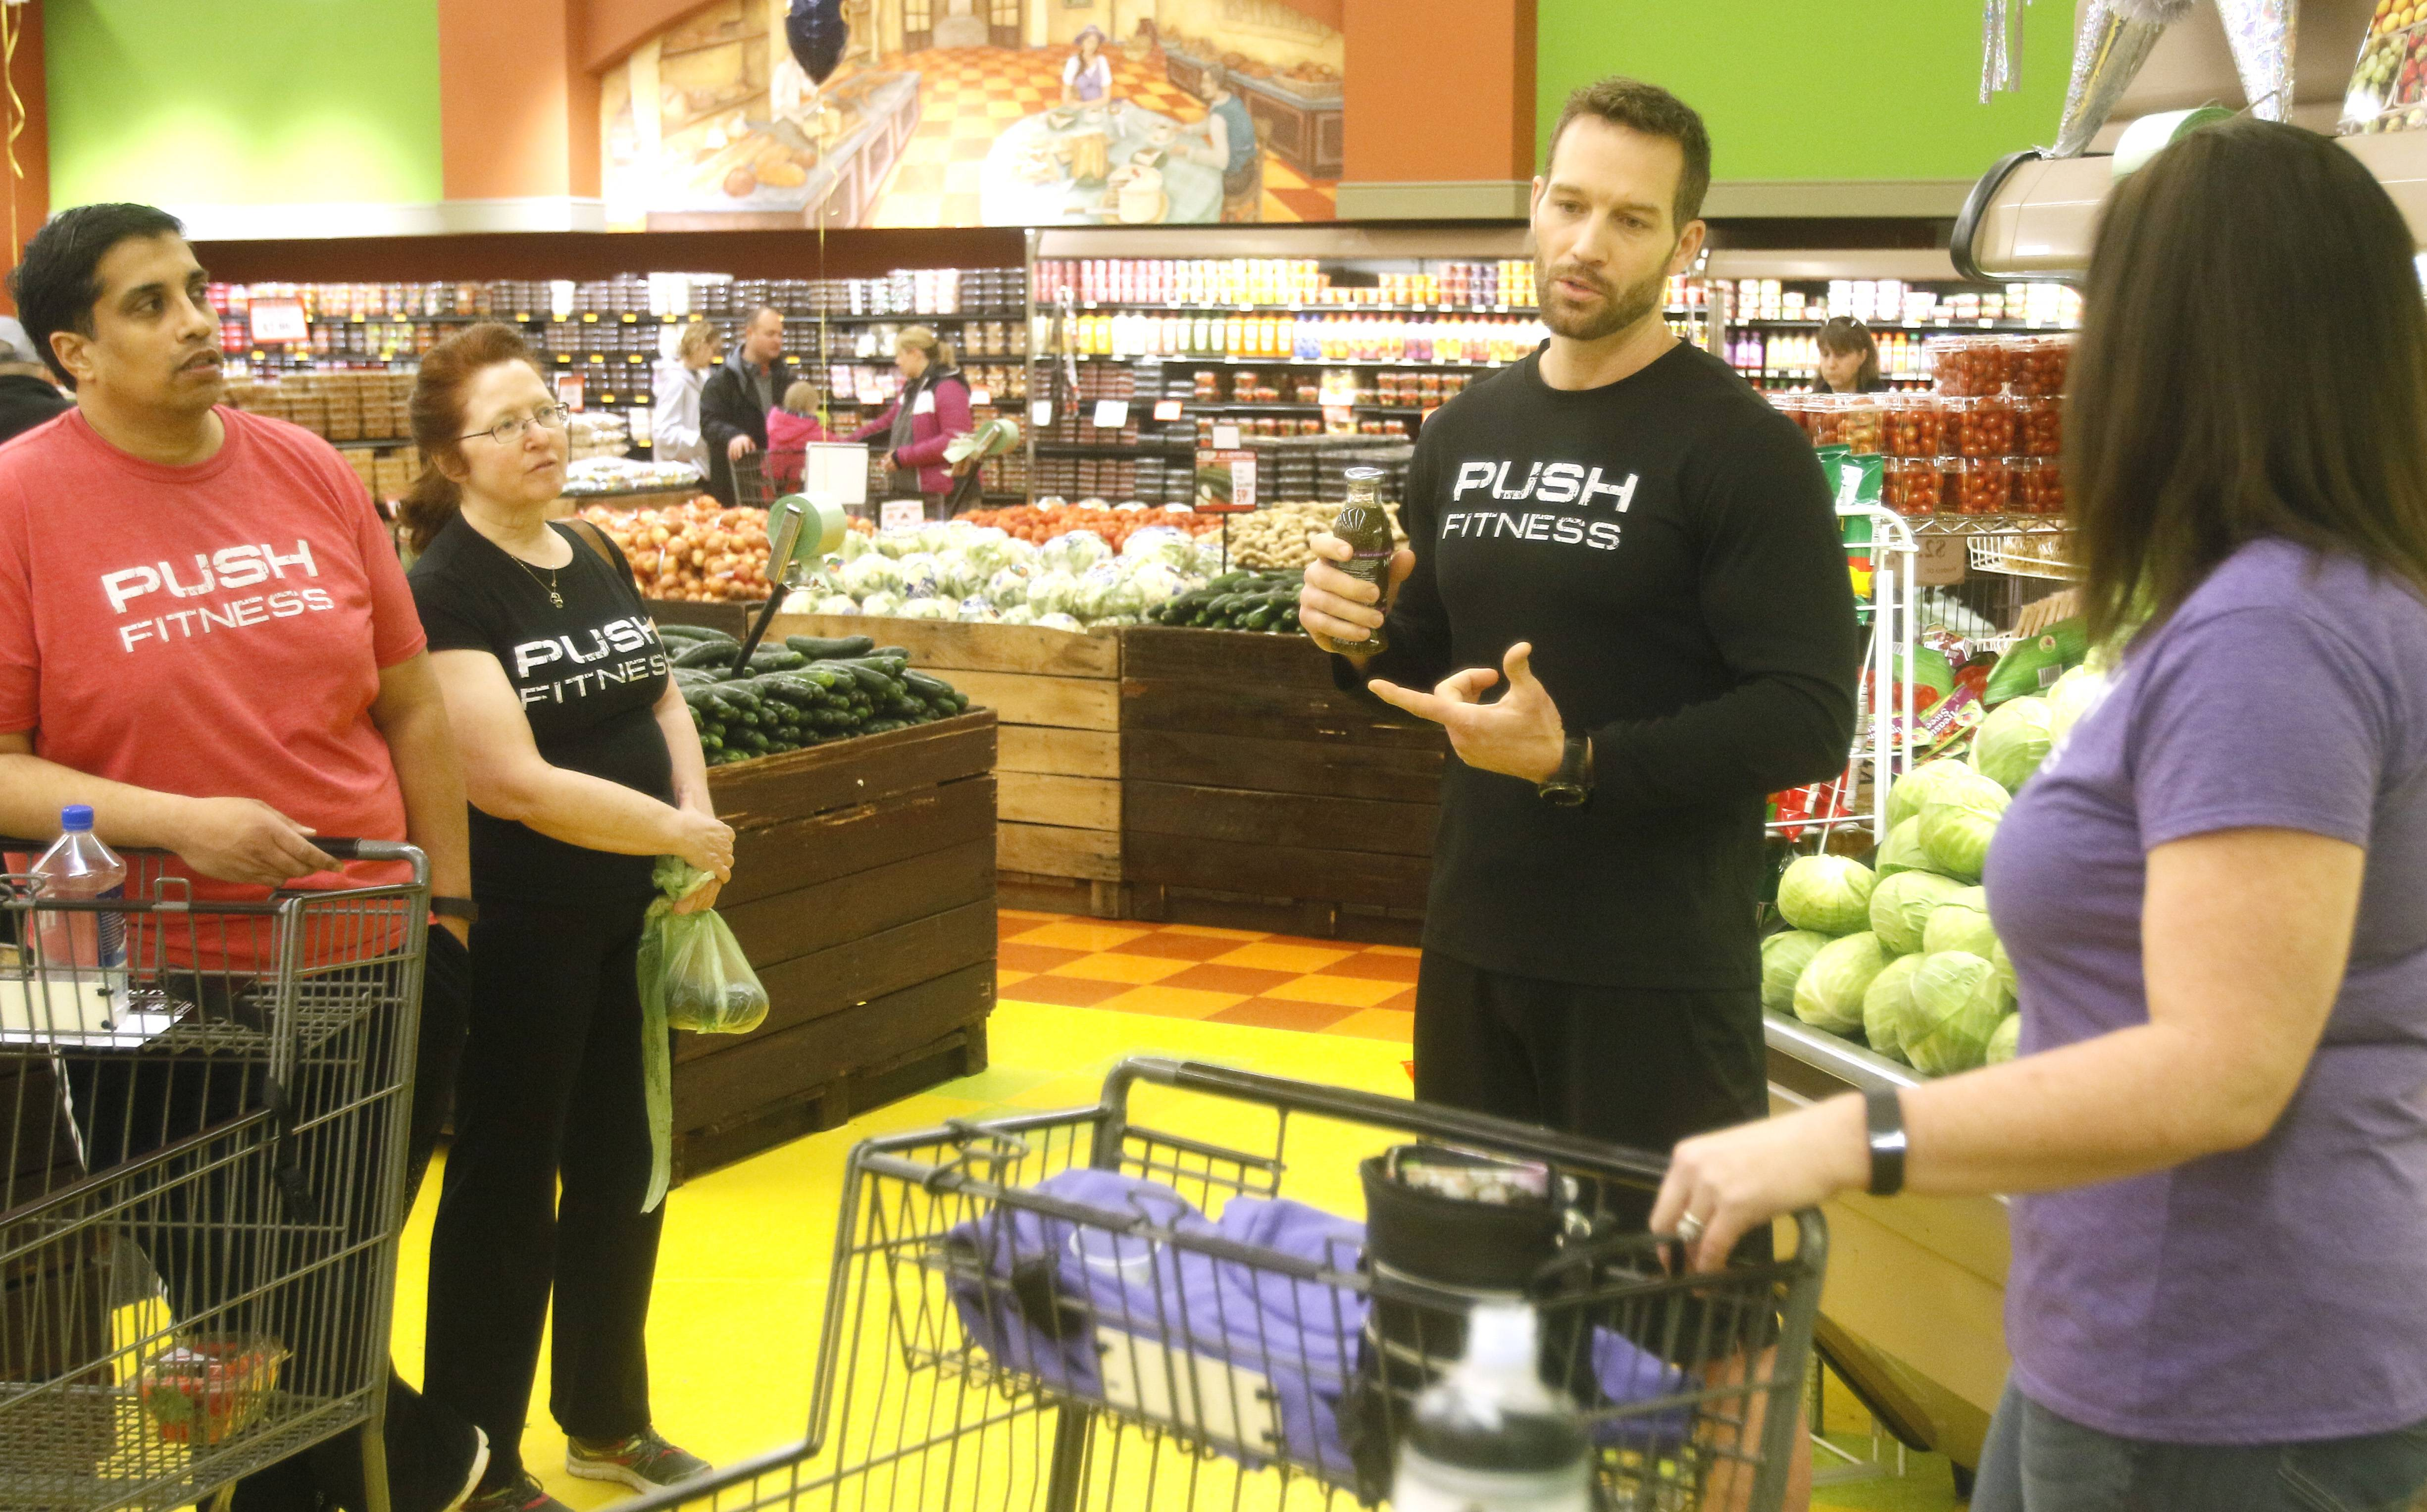 Push Fitness trainer Josh Steckler guides the Fittest Loser contestants toward powerhouse produce items such as spinach, kale, broccoli, avocados and berries at Valli Produce in Glendale Heights.